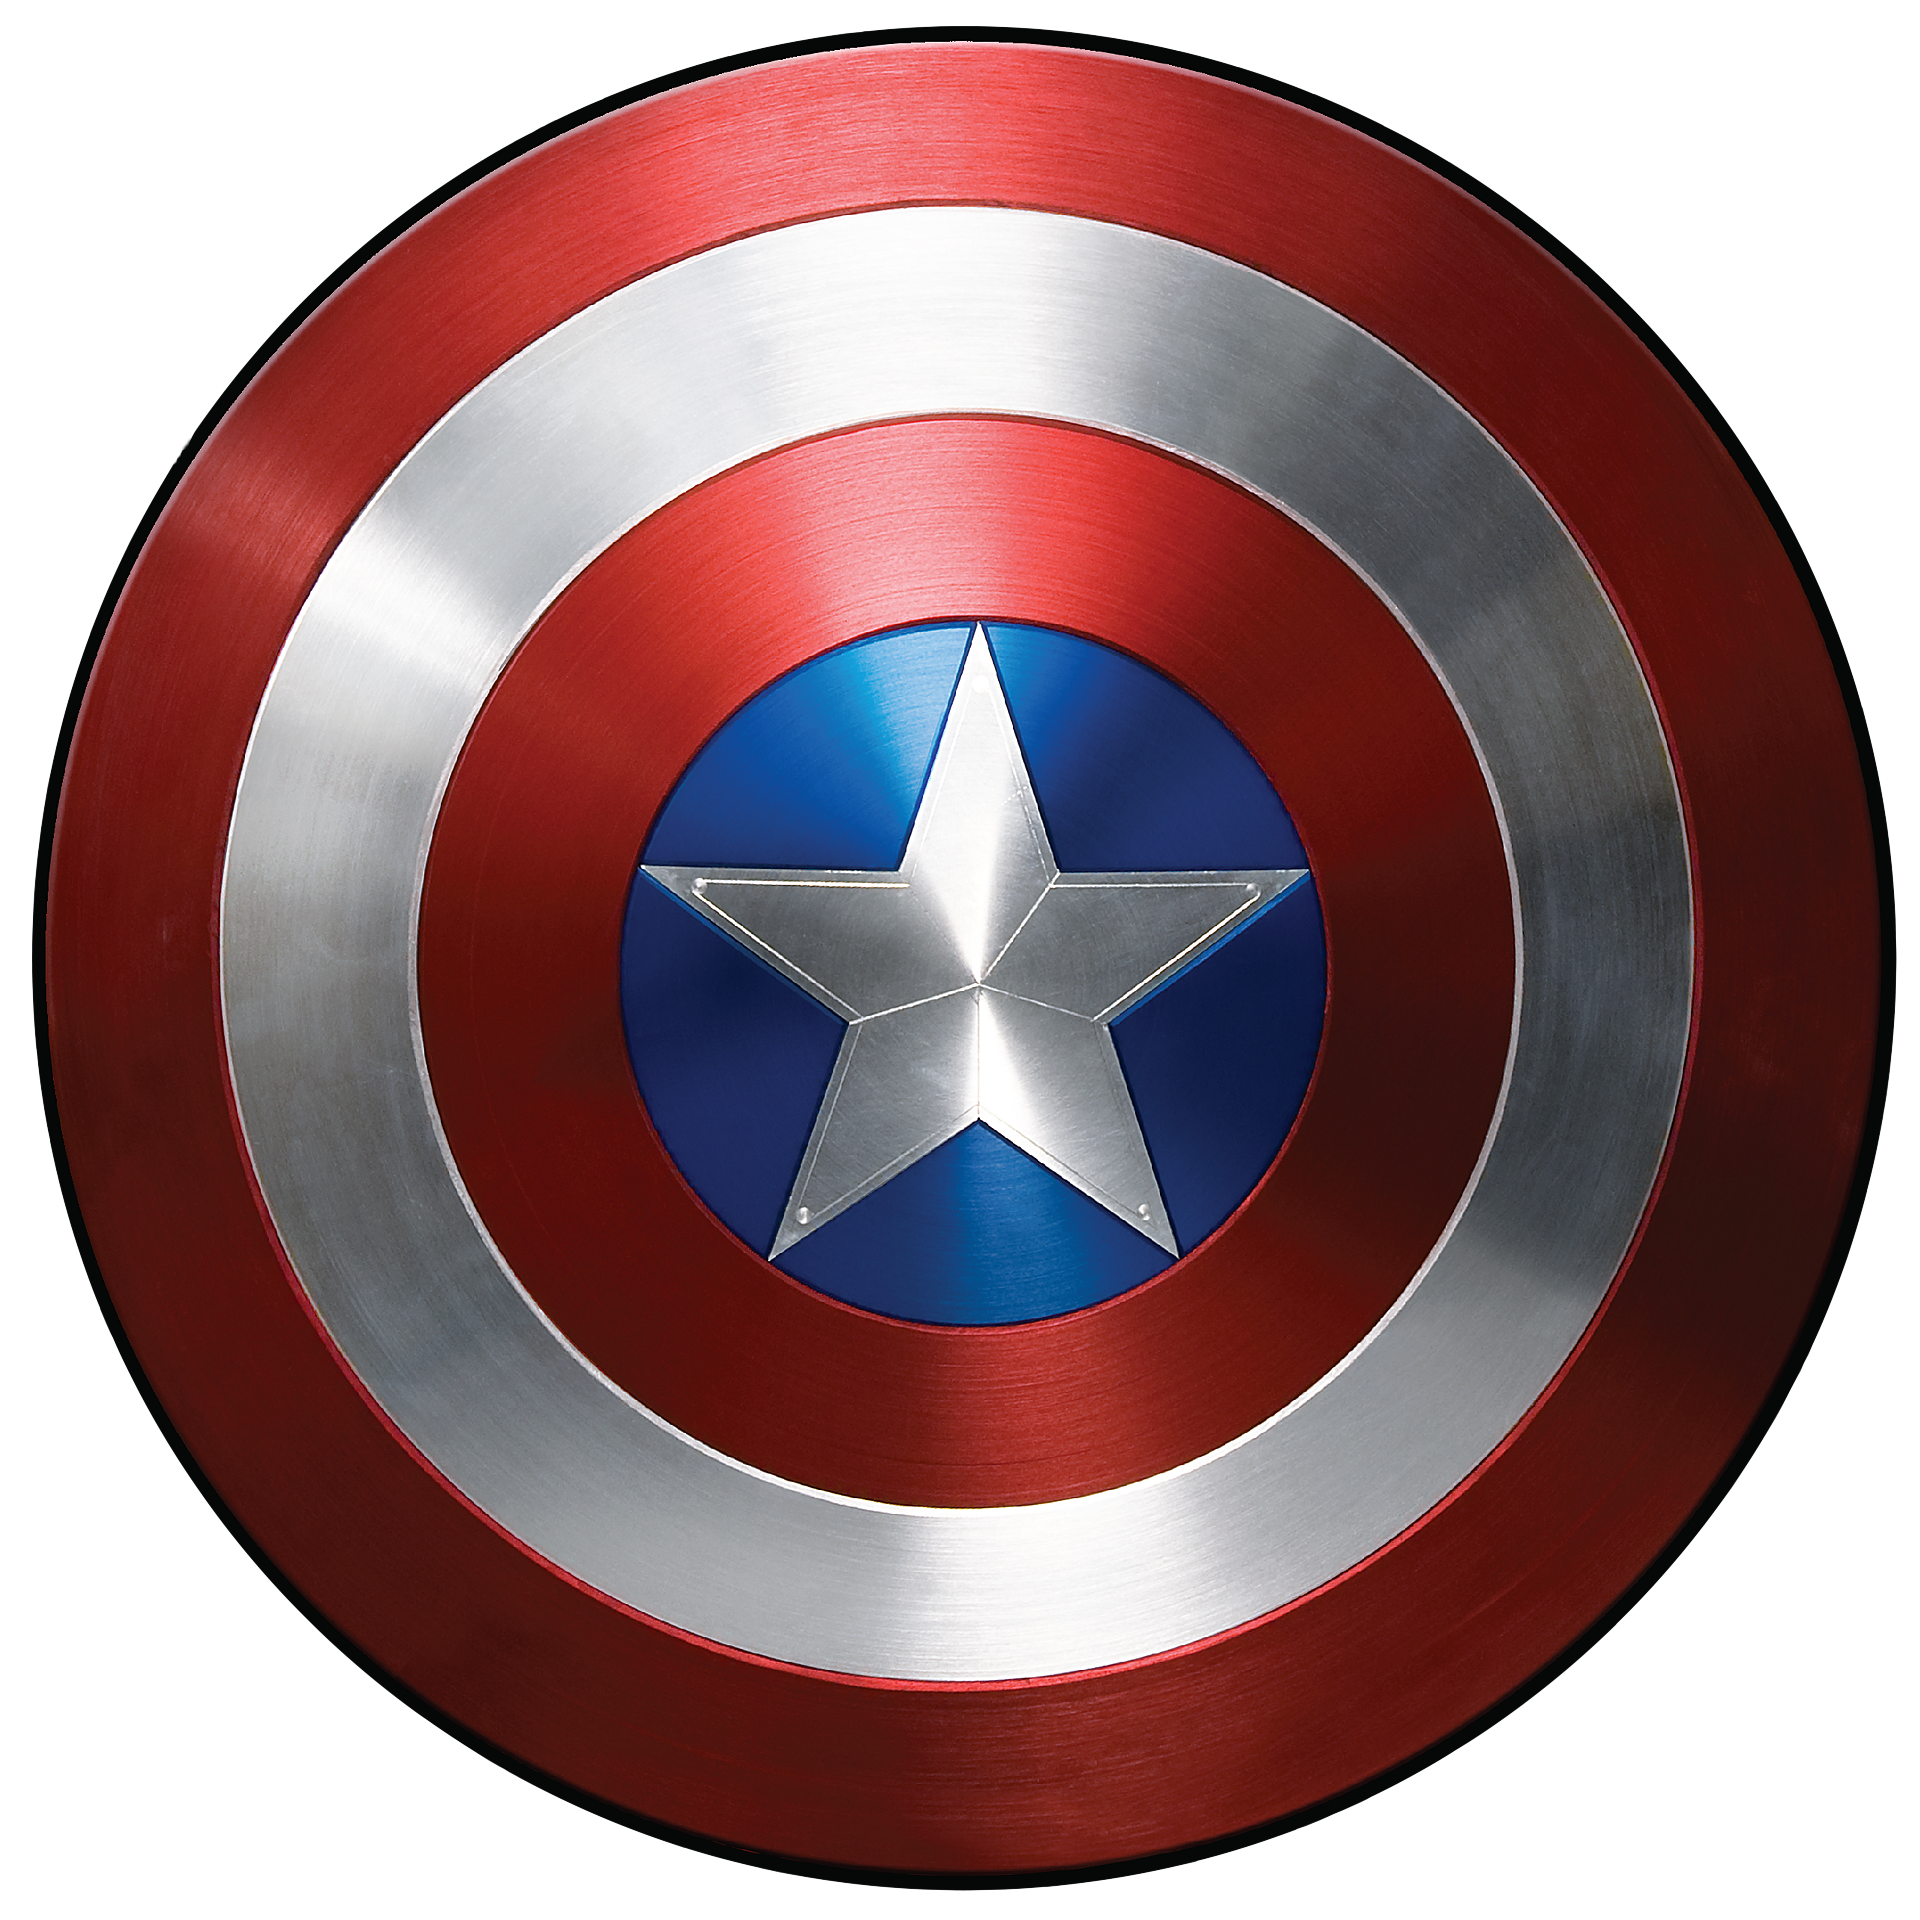 captain america captain america wallpaper marvel captain america captain america shield wallpaper marvel captain america